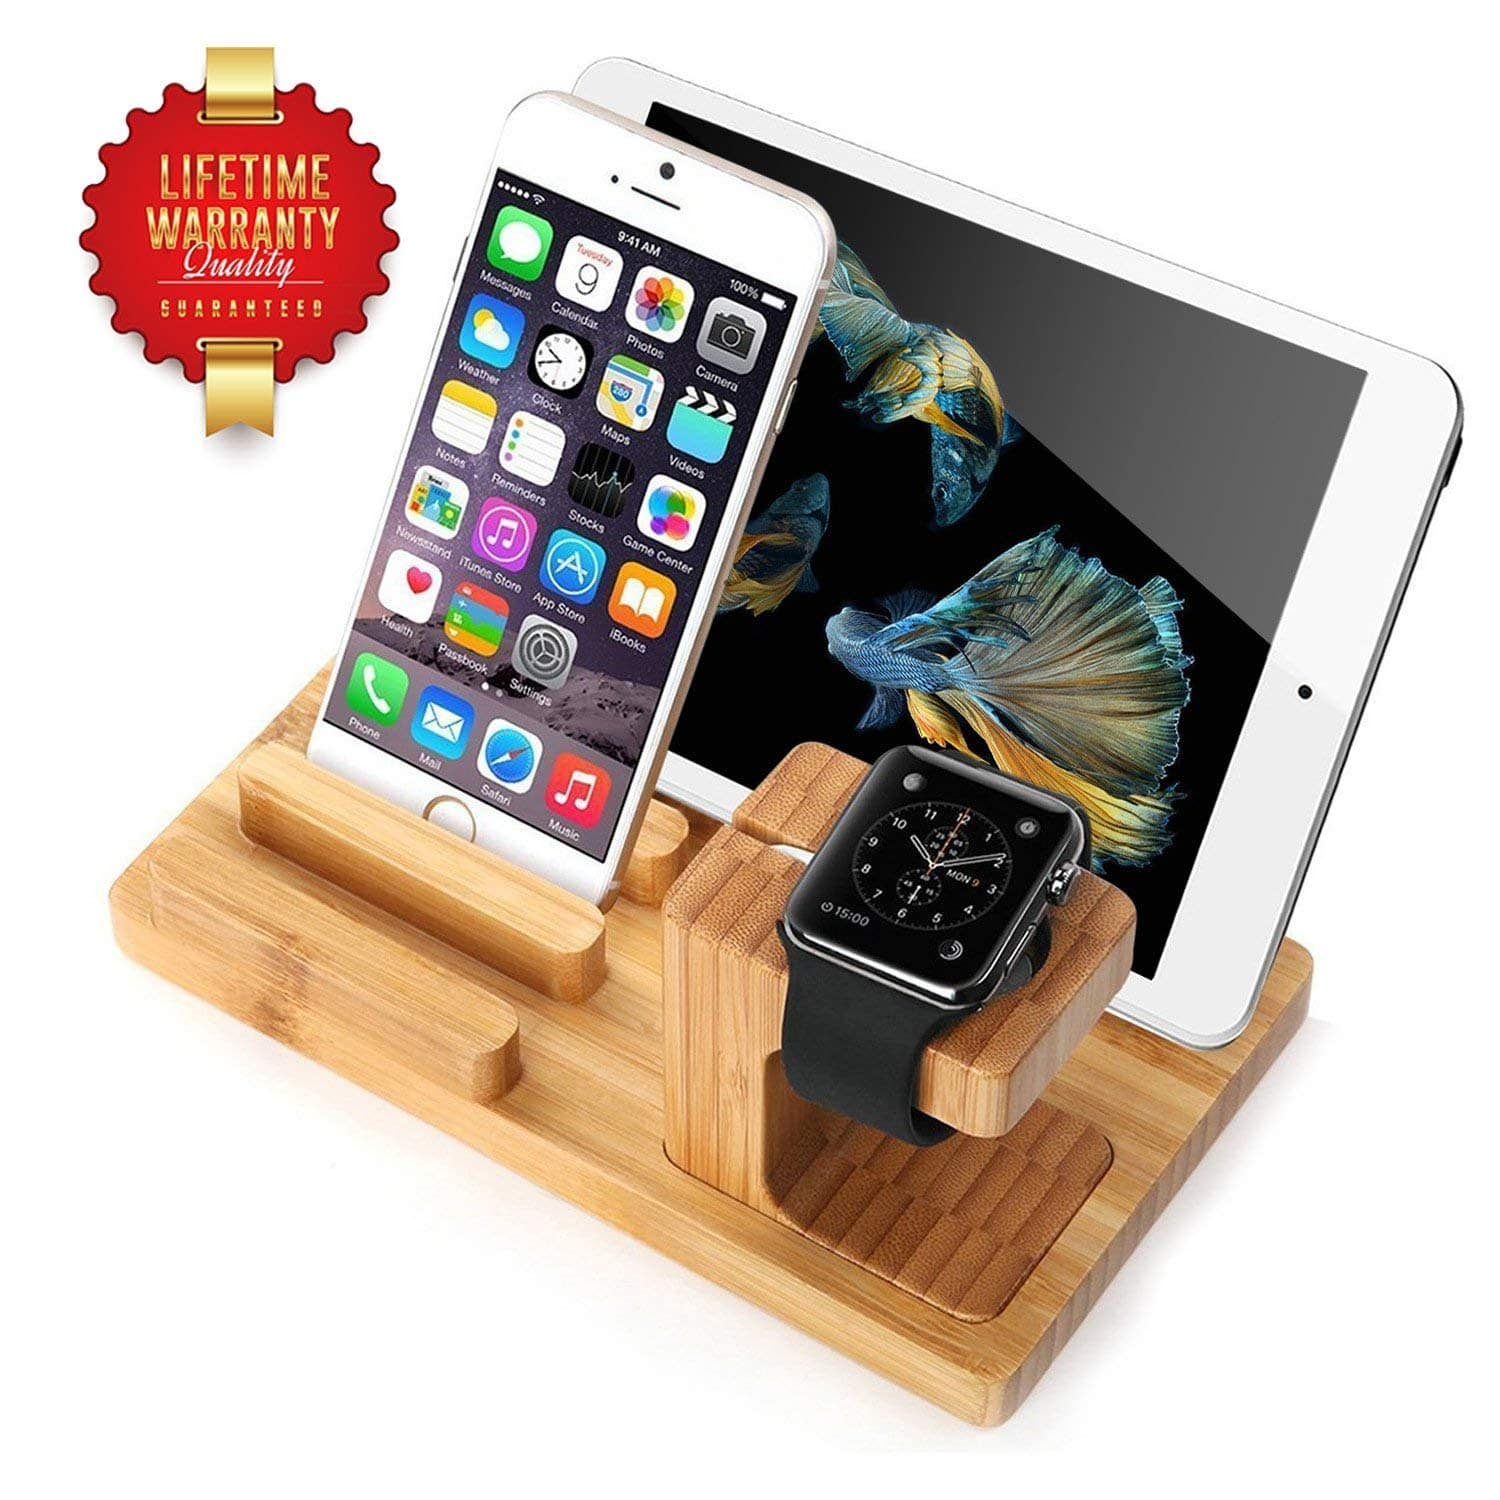 Bamboo Wood Charging Dock Stands for iPhone, apple watch, ipad, amazon echo etc- 50% off - Amazon $8.49